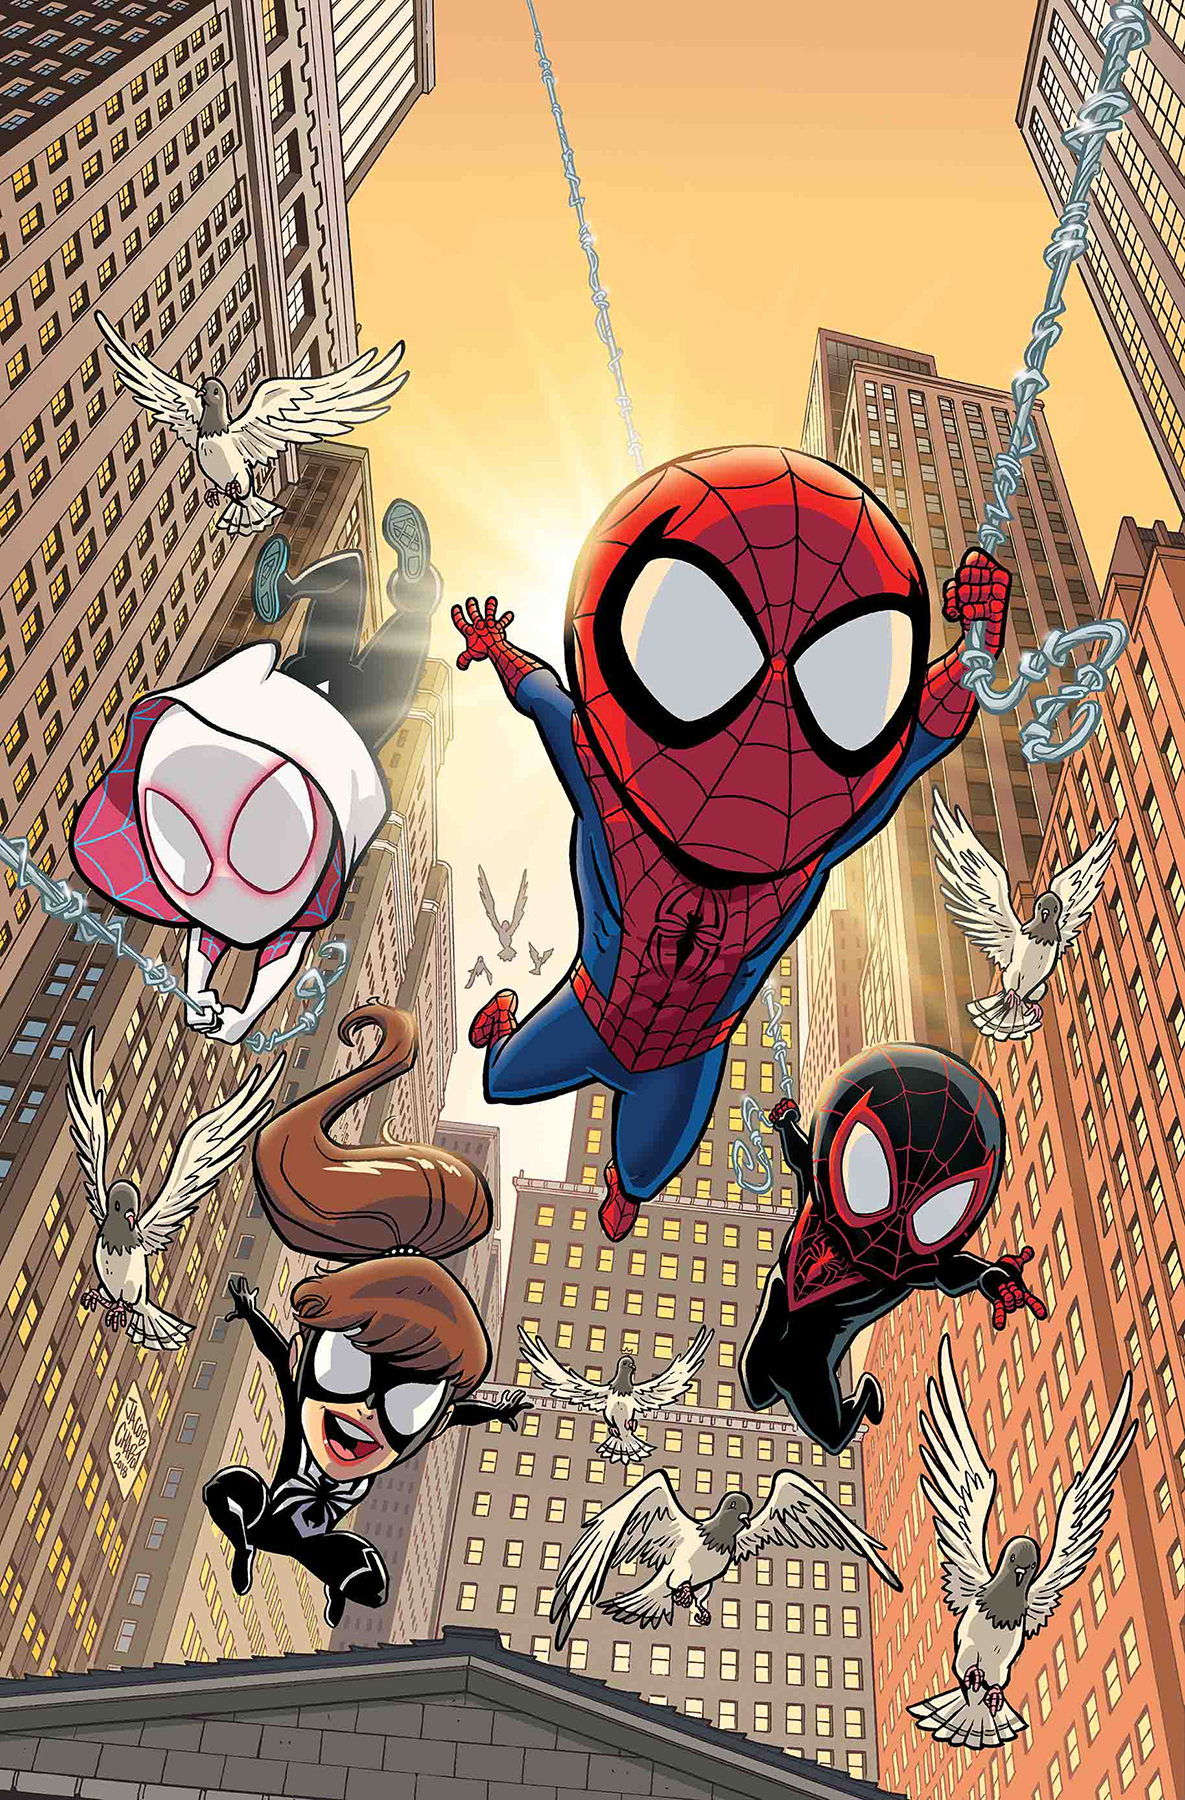 MSH ADVENTURES SPIDER-MAN ACROSS SPIDER-VERSE #1